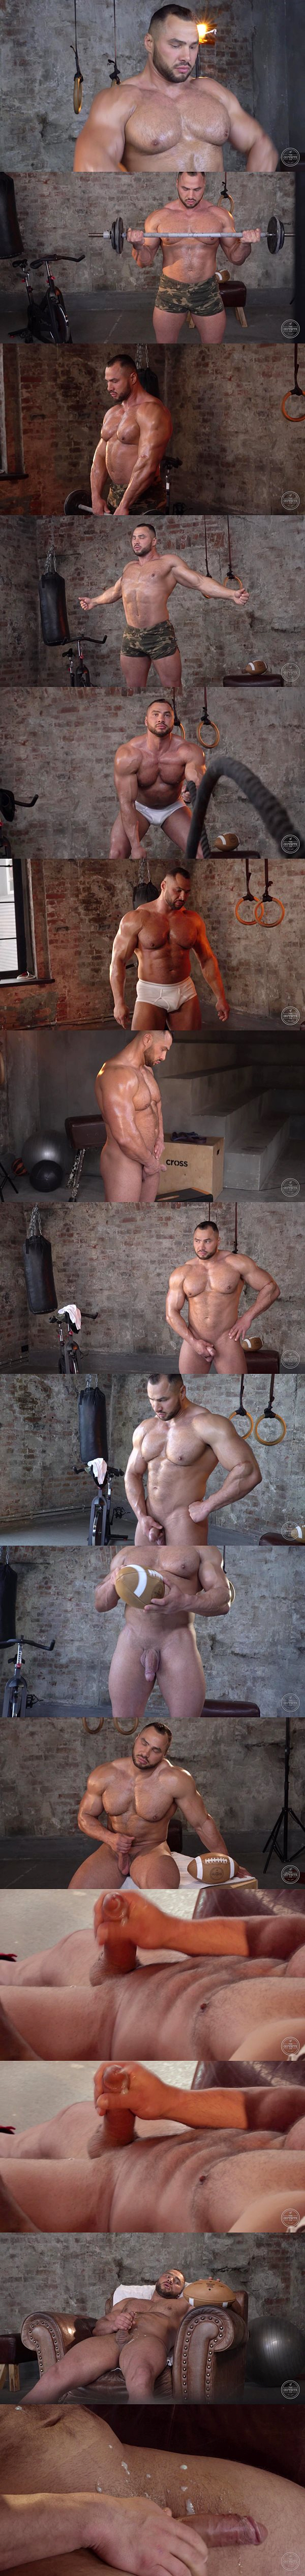 Beefy newcomer, Russian bodybuilder Stas works out and poses his strong muscle body before he strokes a sticky load out of his hard cock at Theguysite